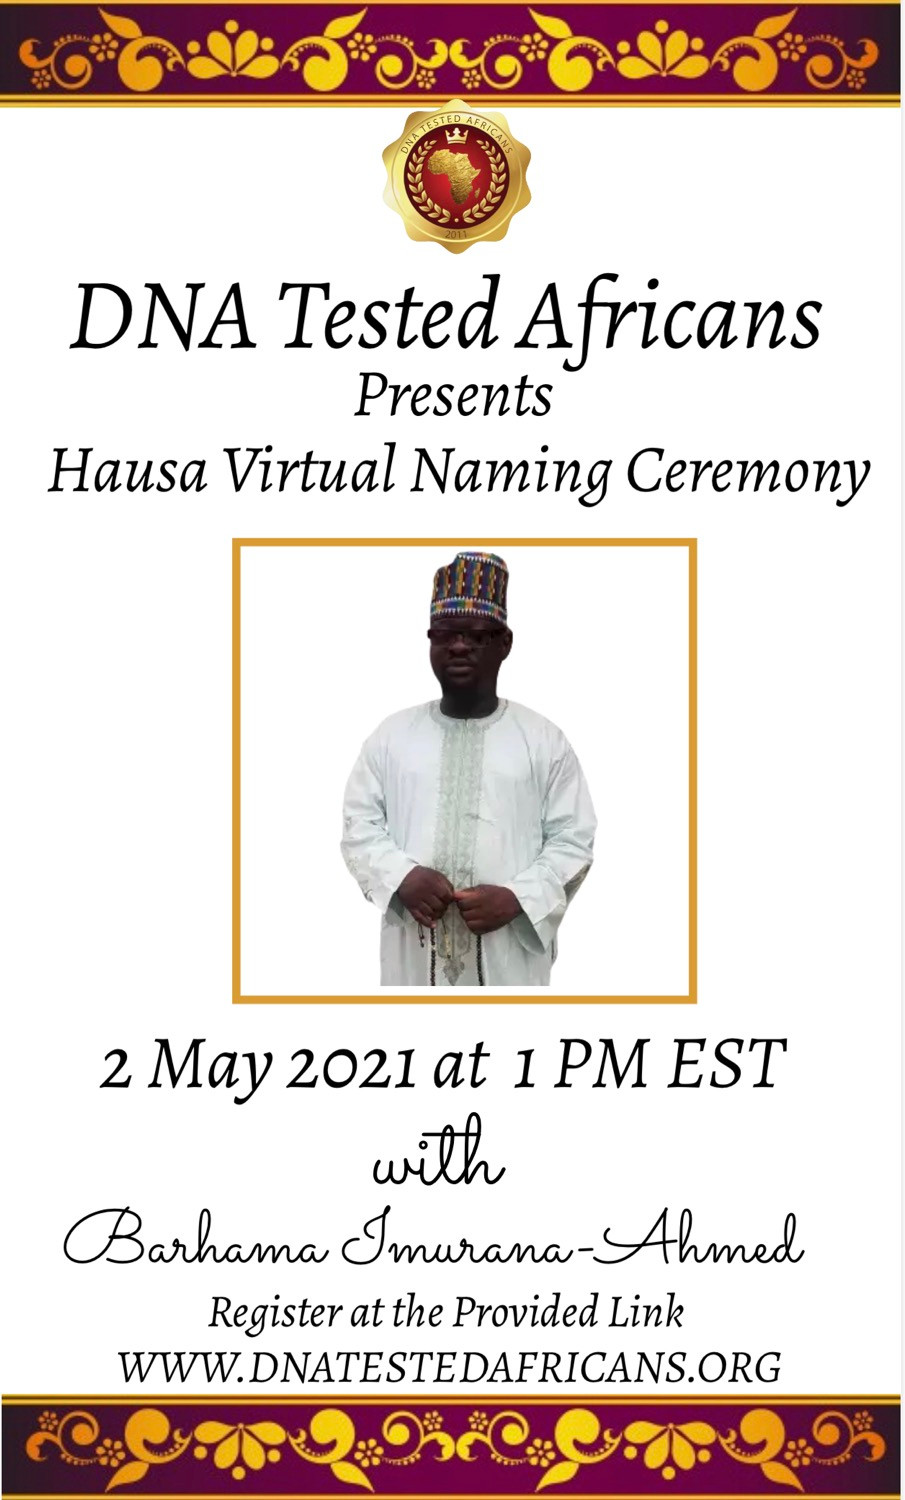 Hausa Naming Ceremony Added